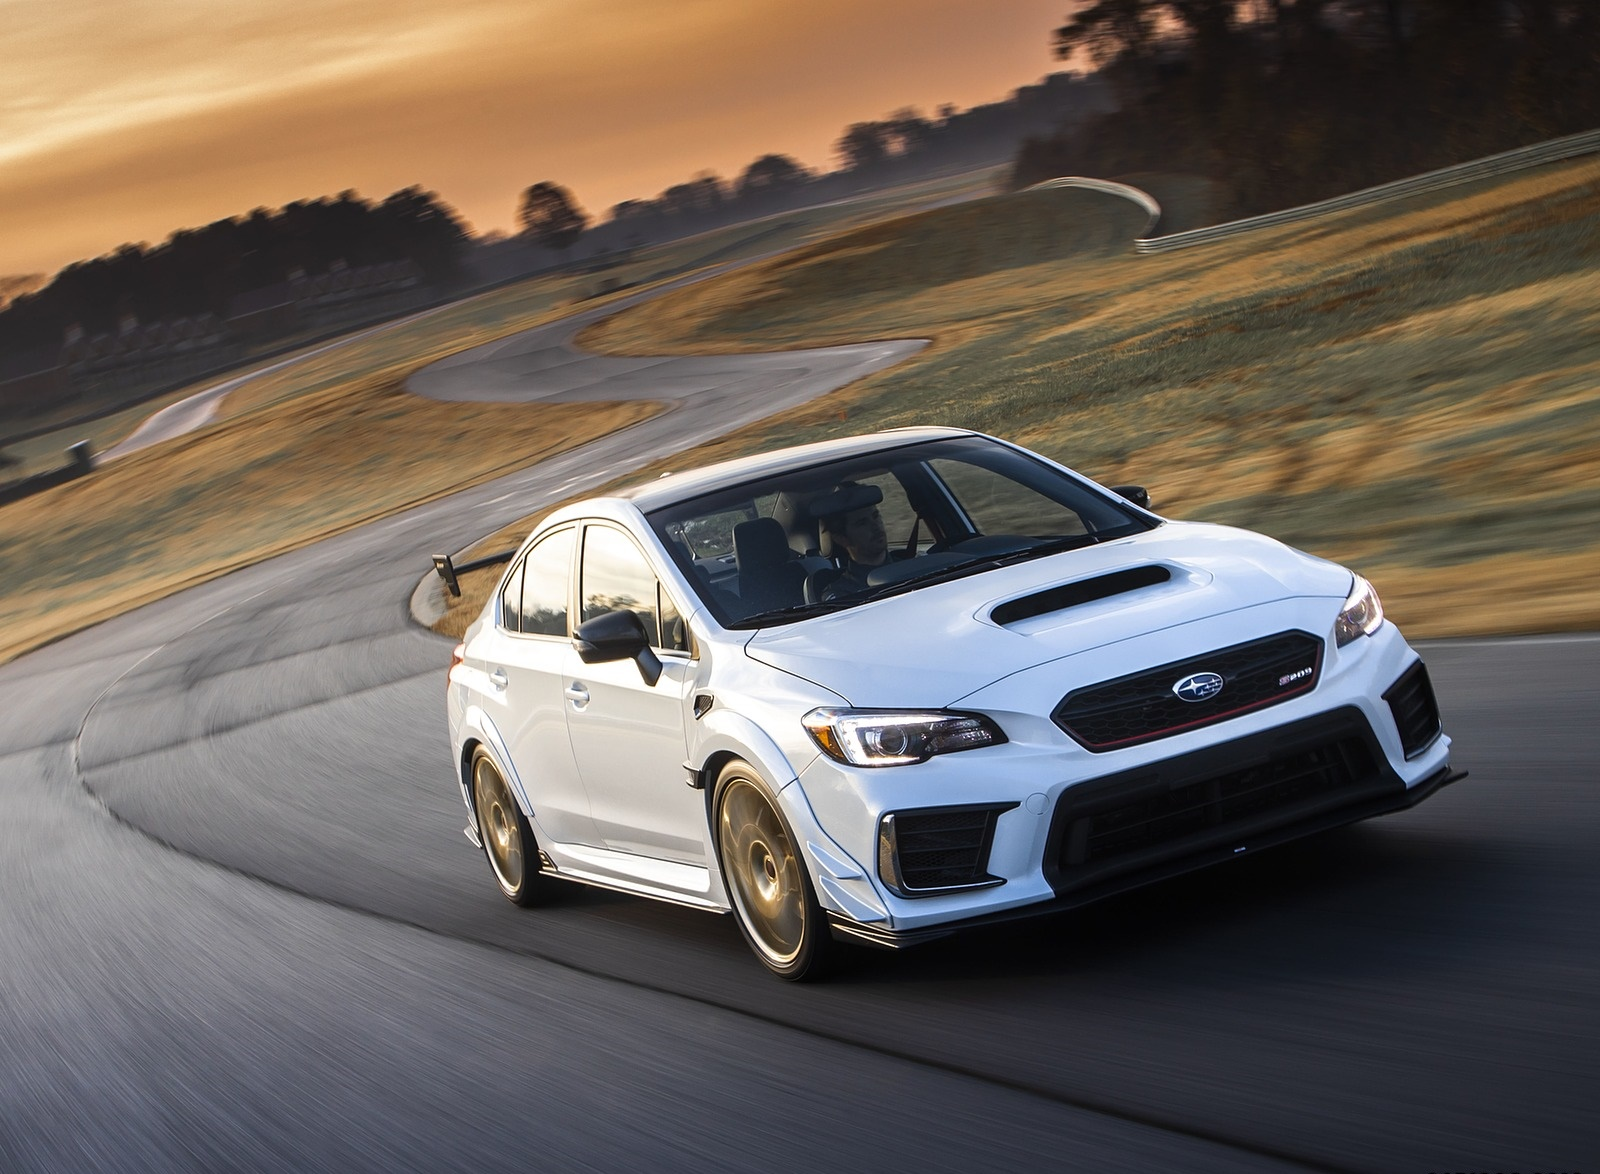 2019 Subaru WRX STI S209 Front Three-Quarter Wallpapers (10)